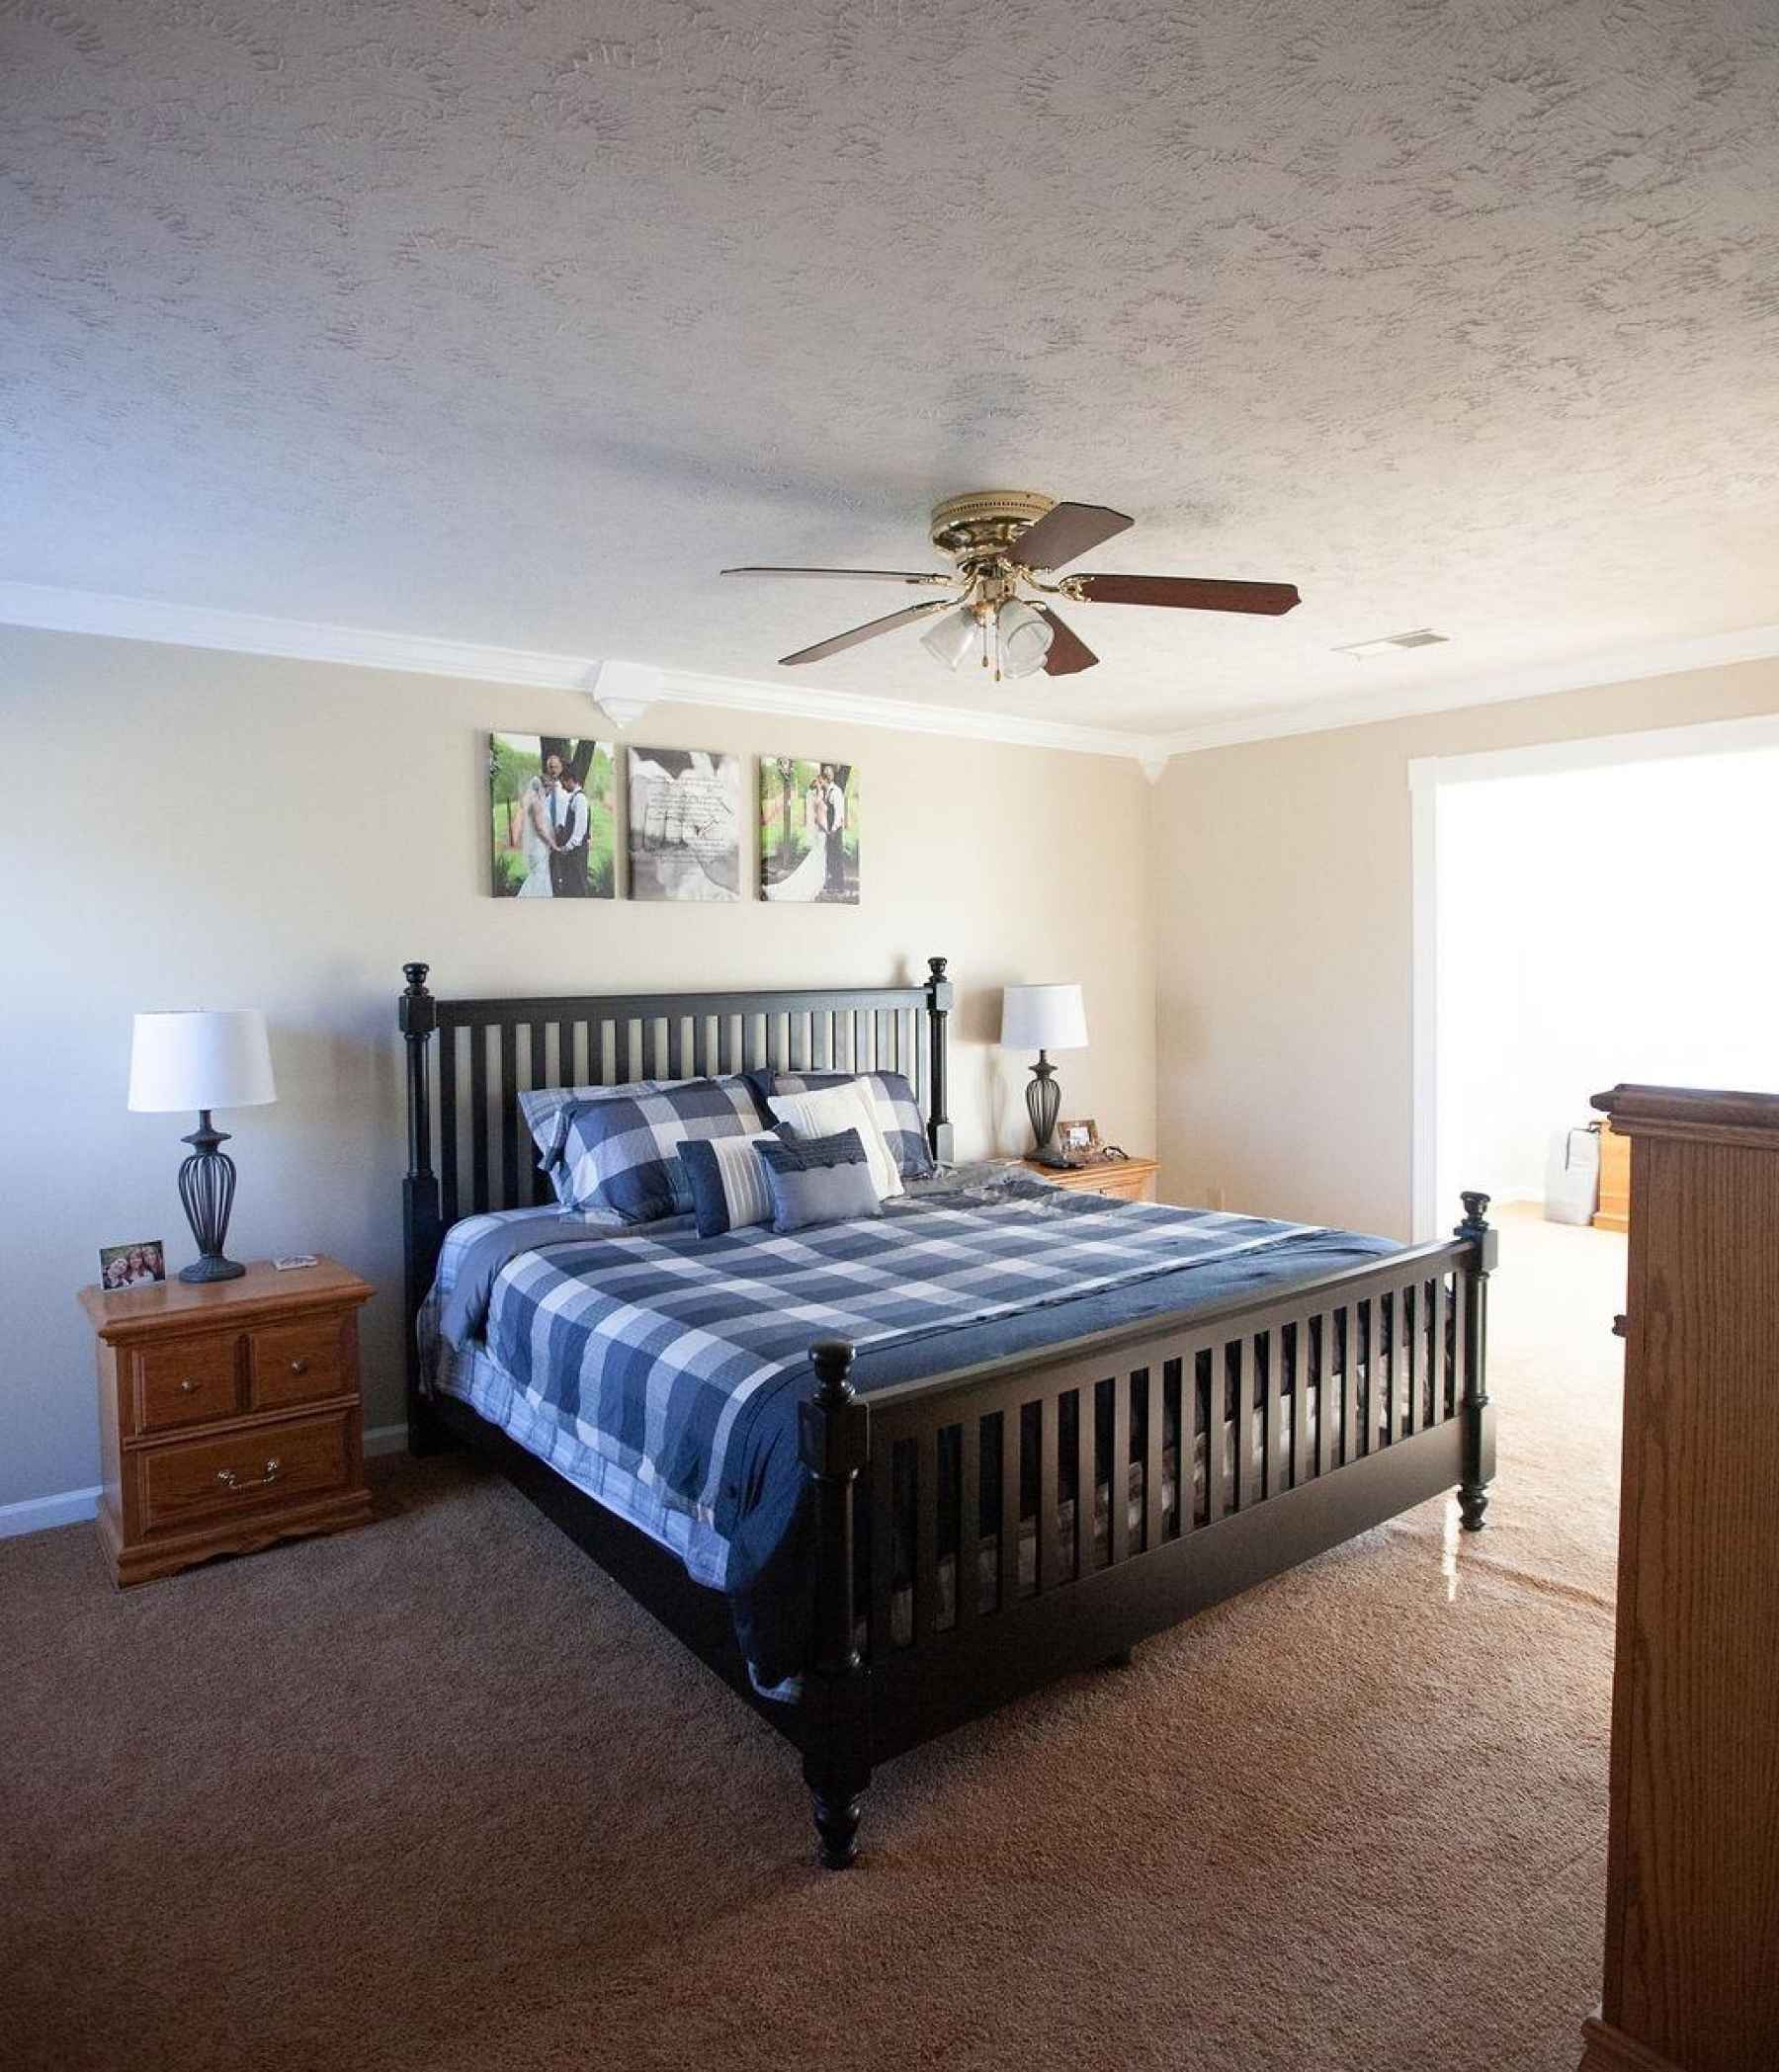 Come and rest in this spacious master suite! This room has fresh paint, new carpet, walk-in closet and an attached sitting room that leads out to a private upper deck.